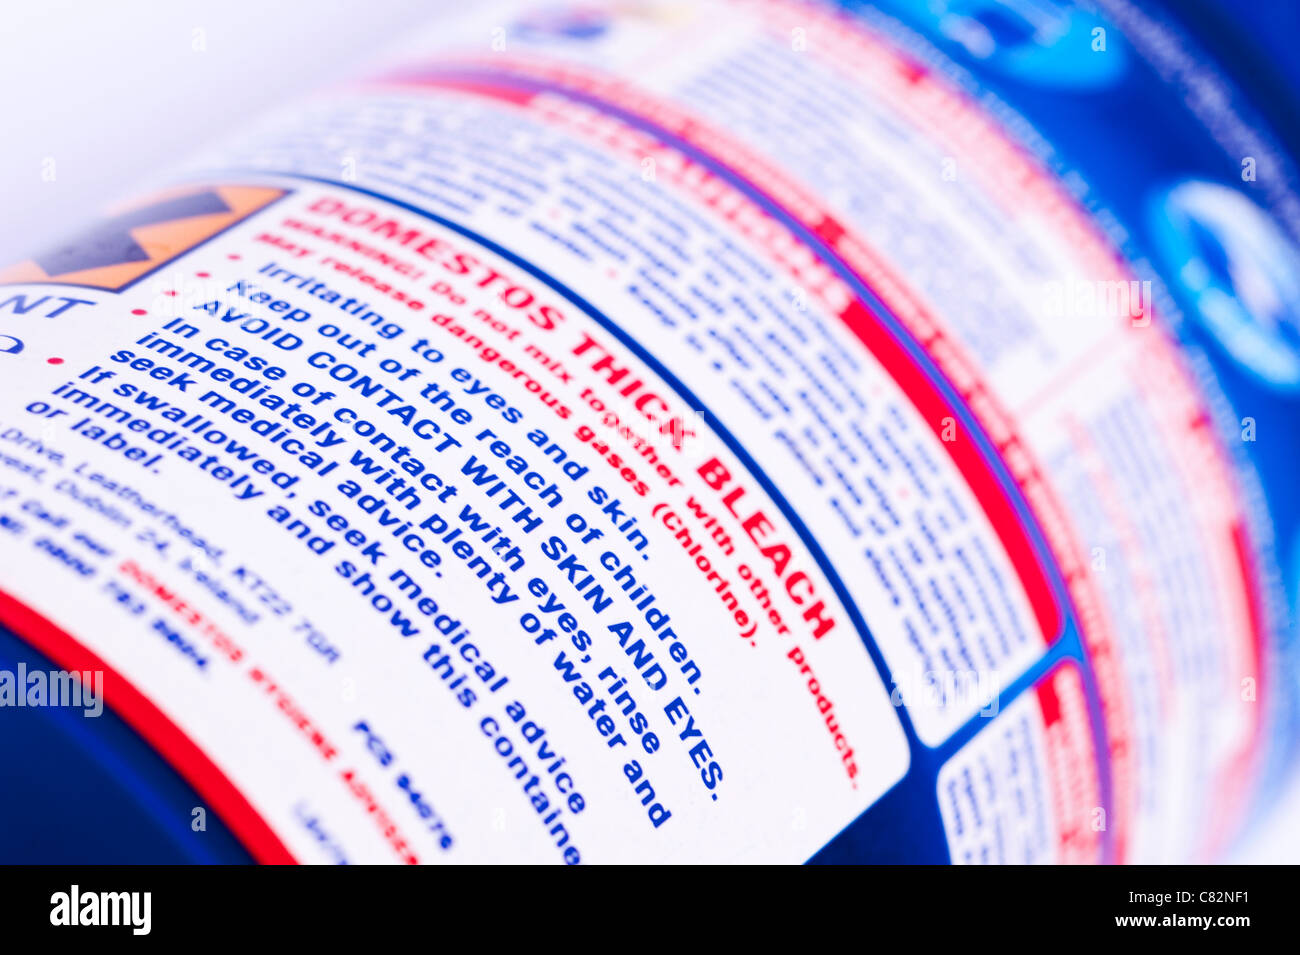 Warning sign on a household bleach product bottle - Stock Image